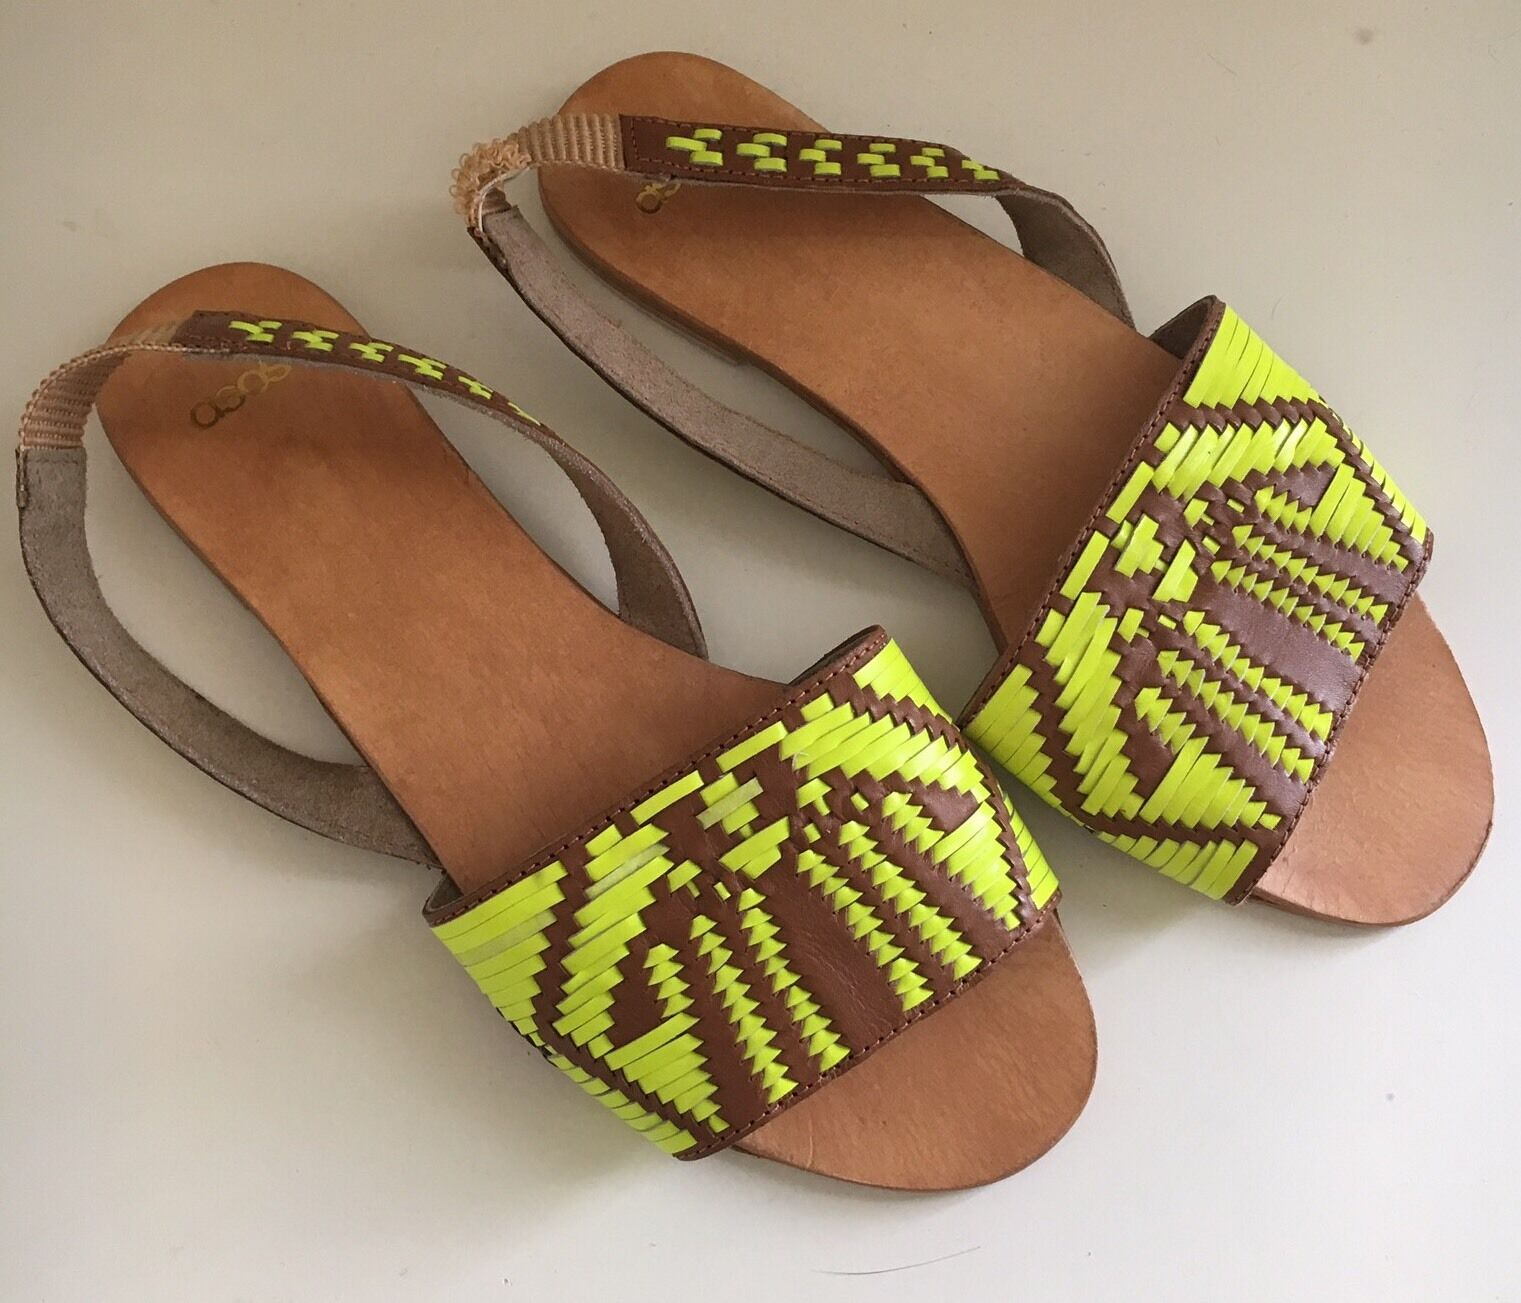 Asos Slingback Woven Sandals US Brown Neon Green Ladies US Sandals 6 Leather c056a3